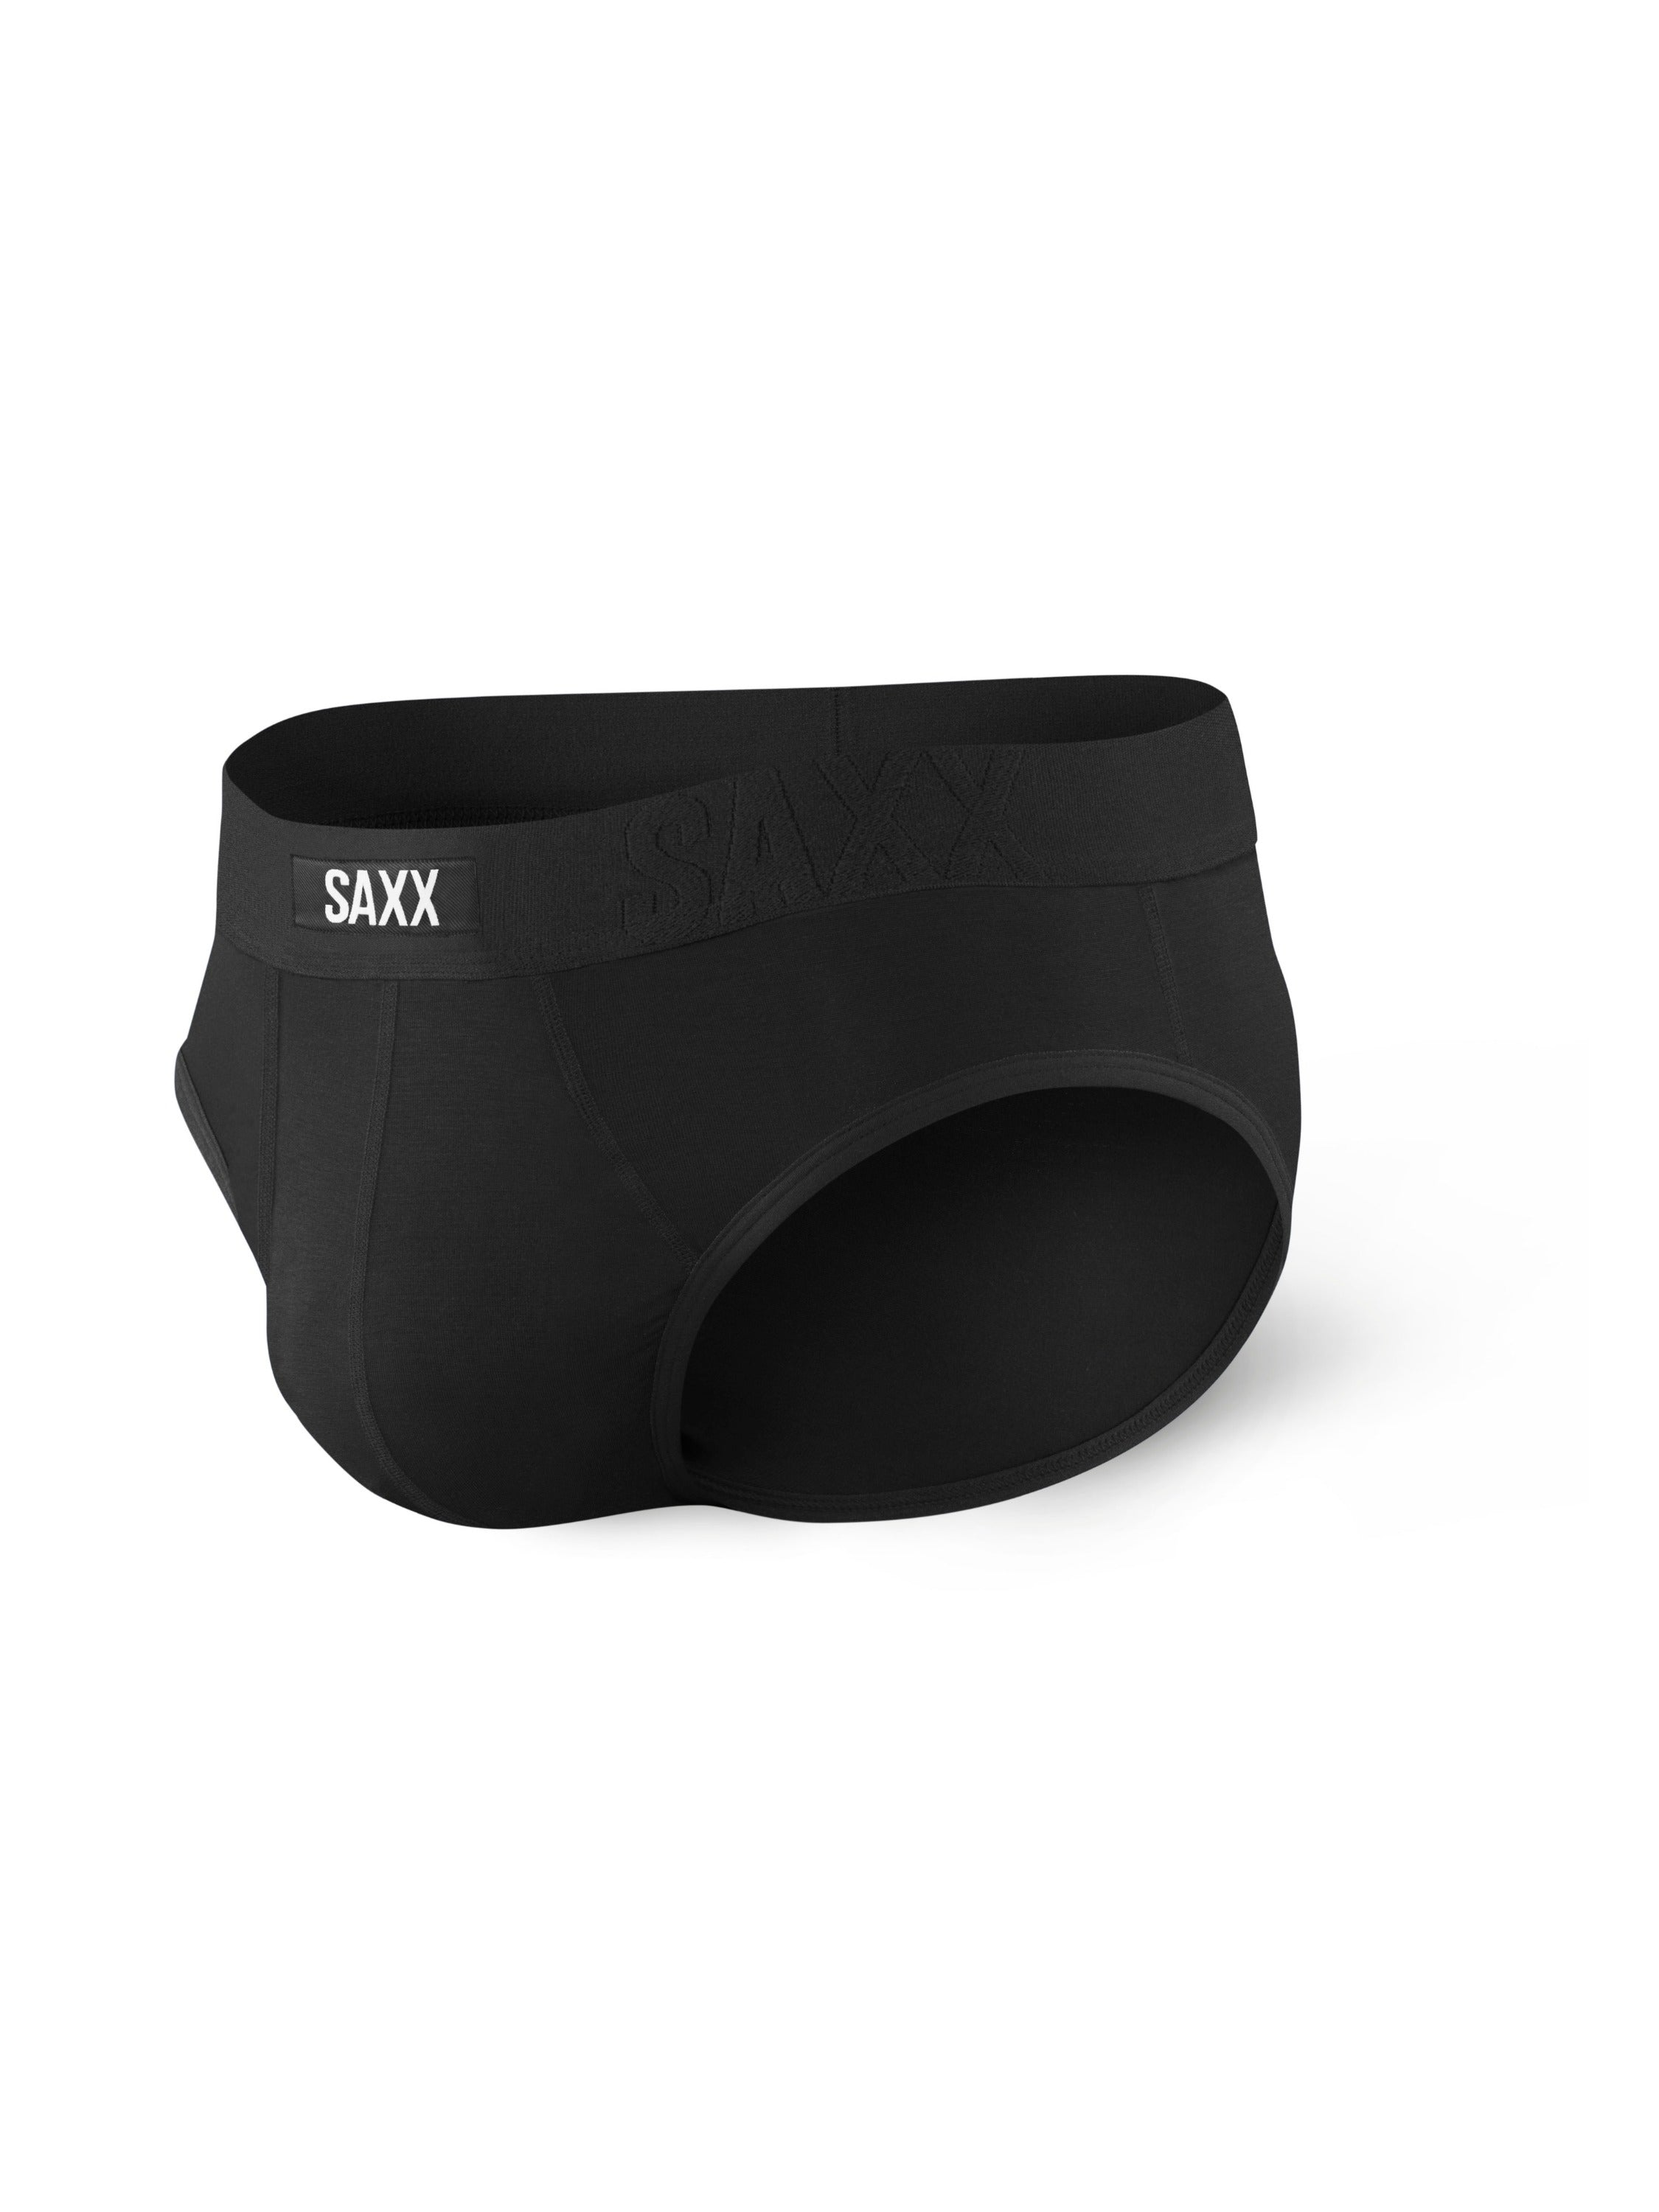 Saxx Black Brief